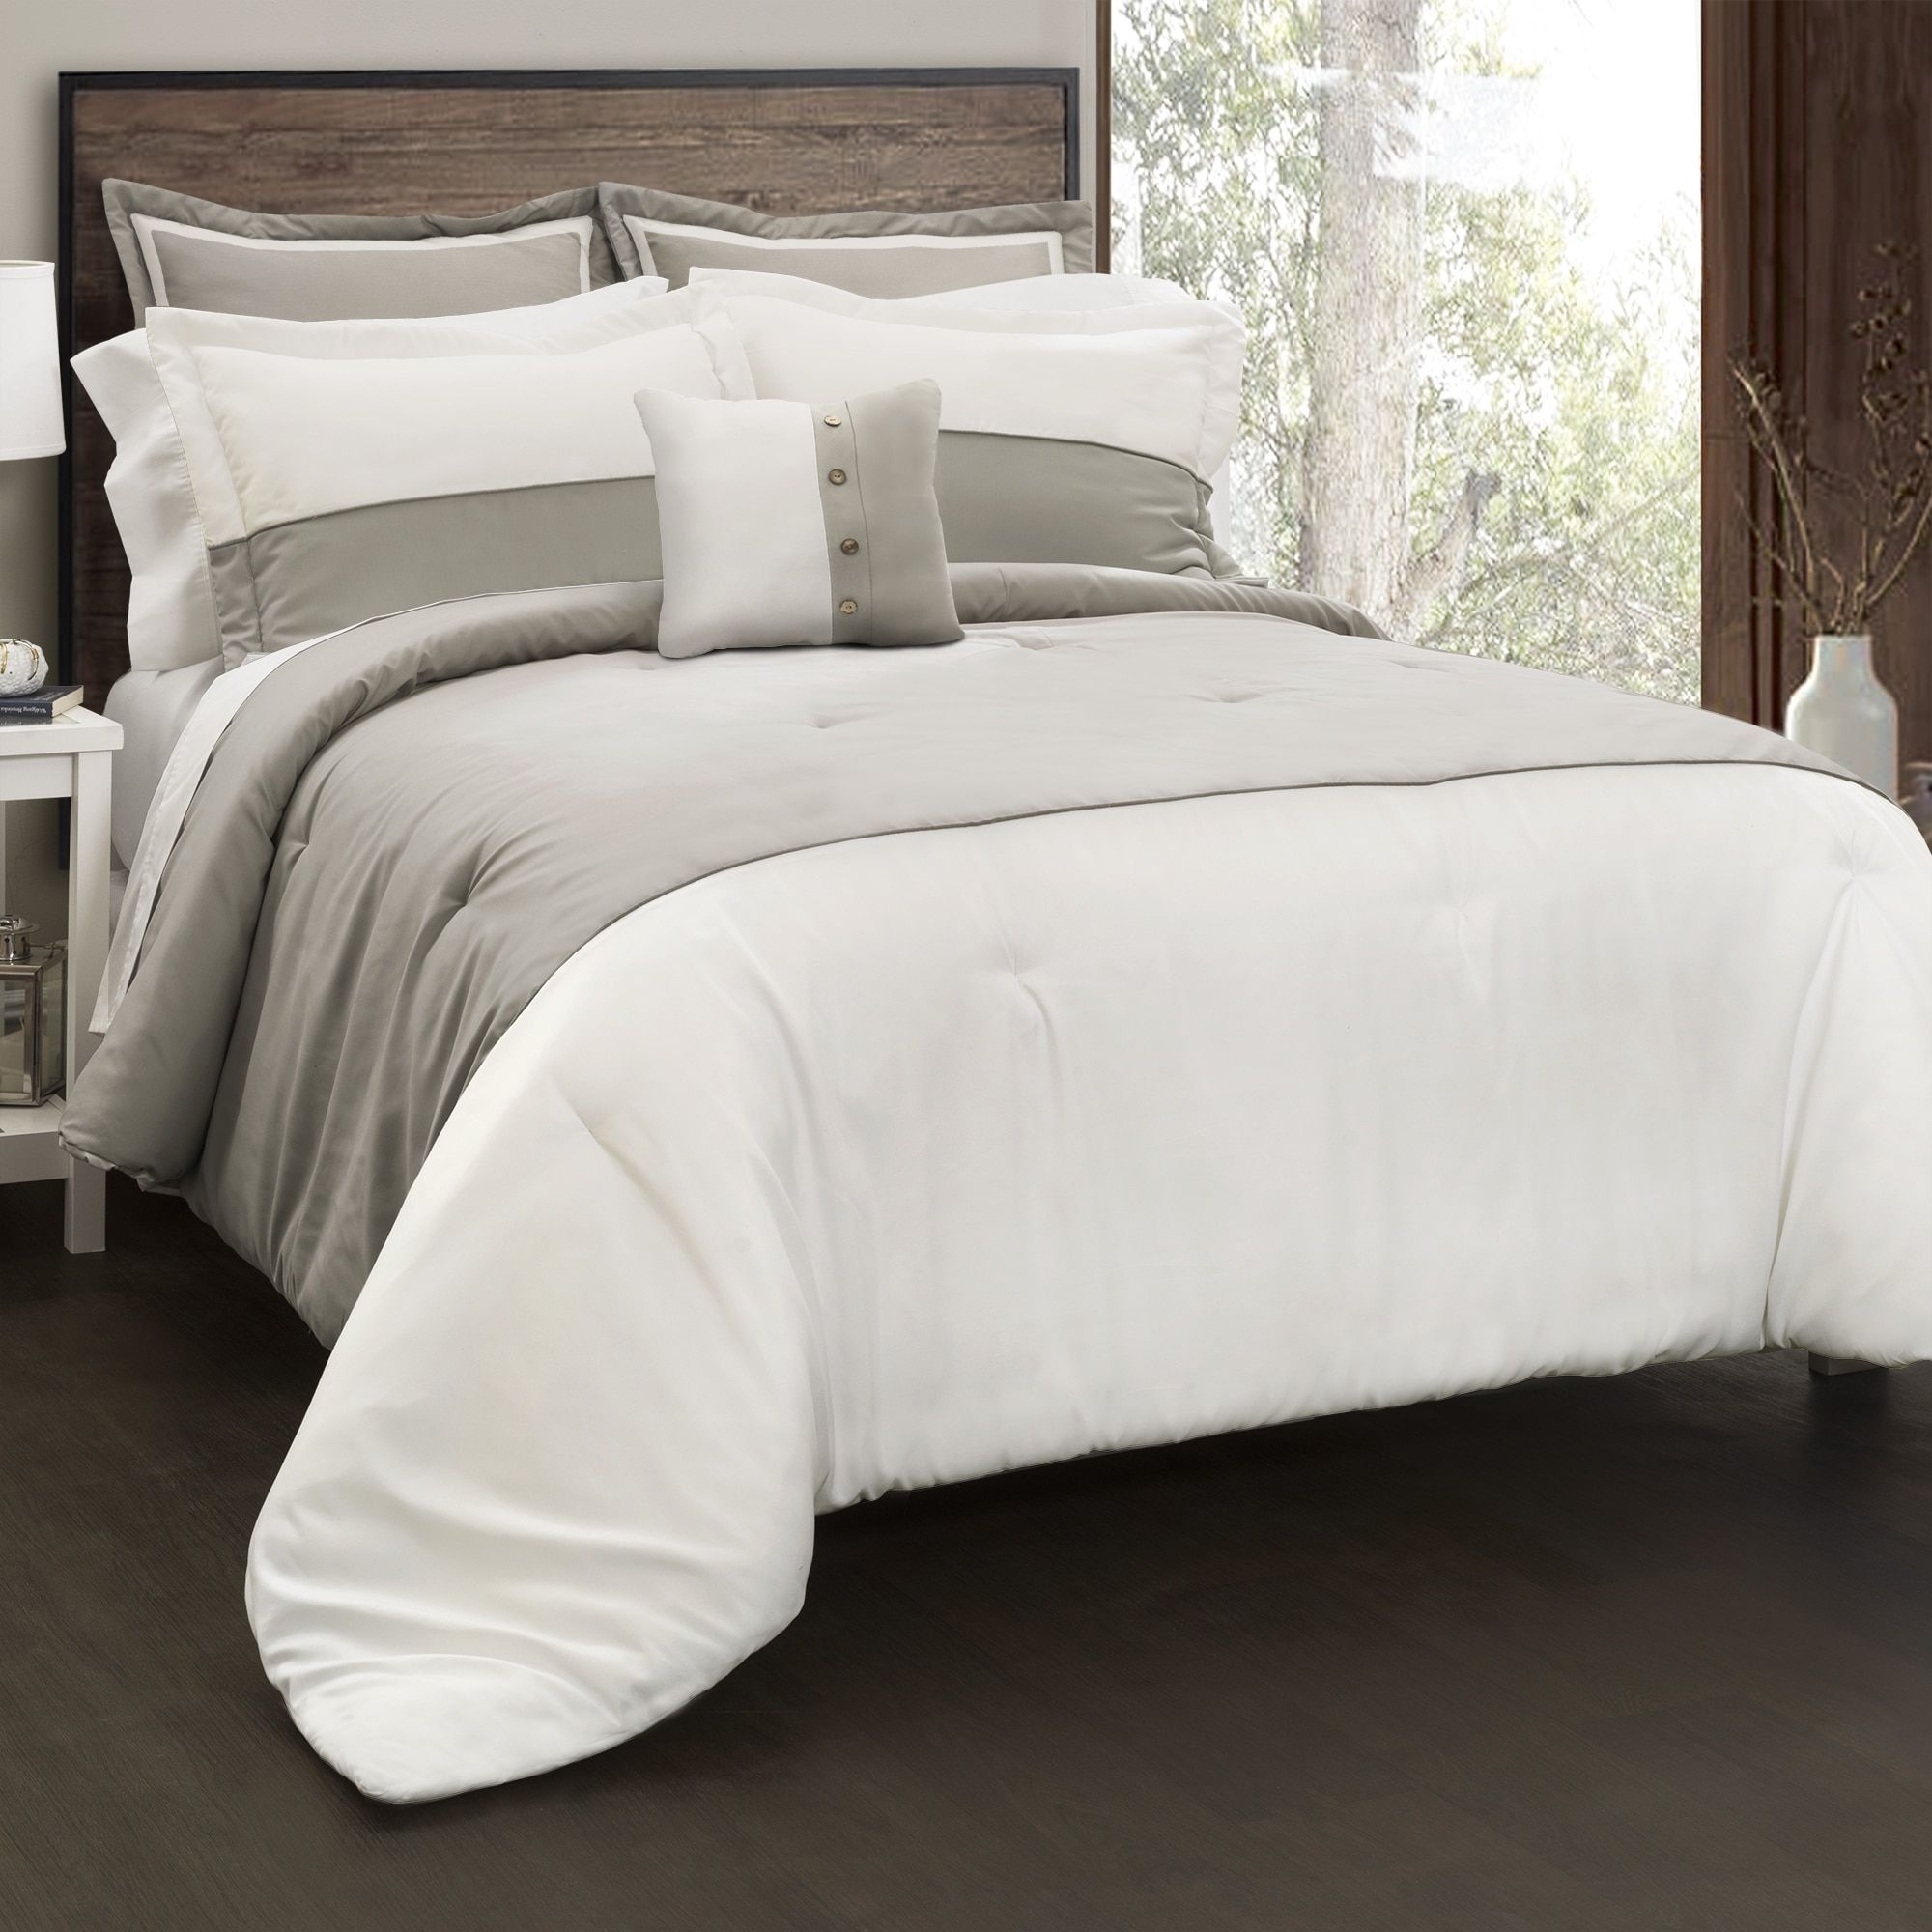 bed coastal men full comforter menfull cribsbedding size for concept and contemporary menbedding bedding modern white sets awesome young king black picture of mini